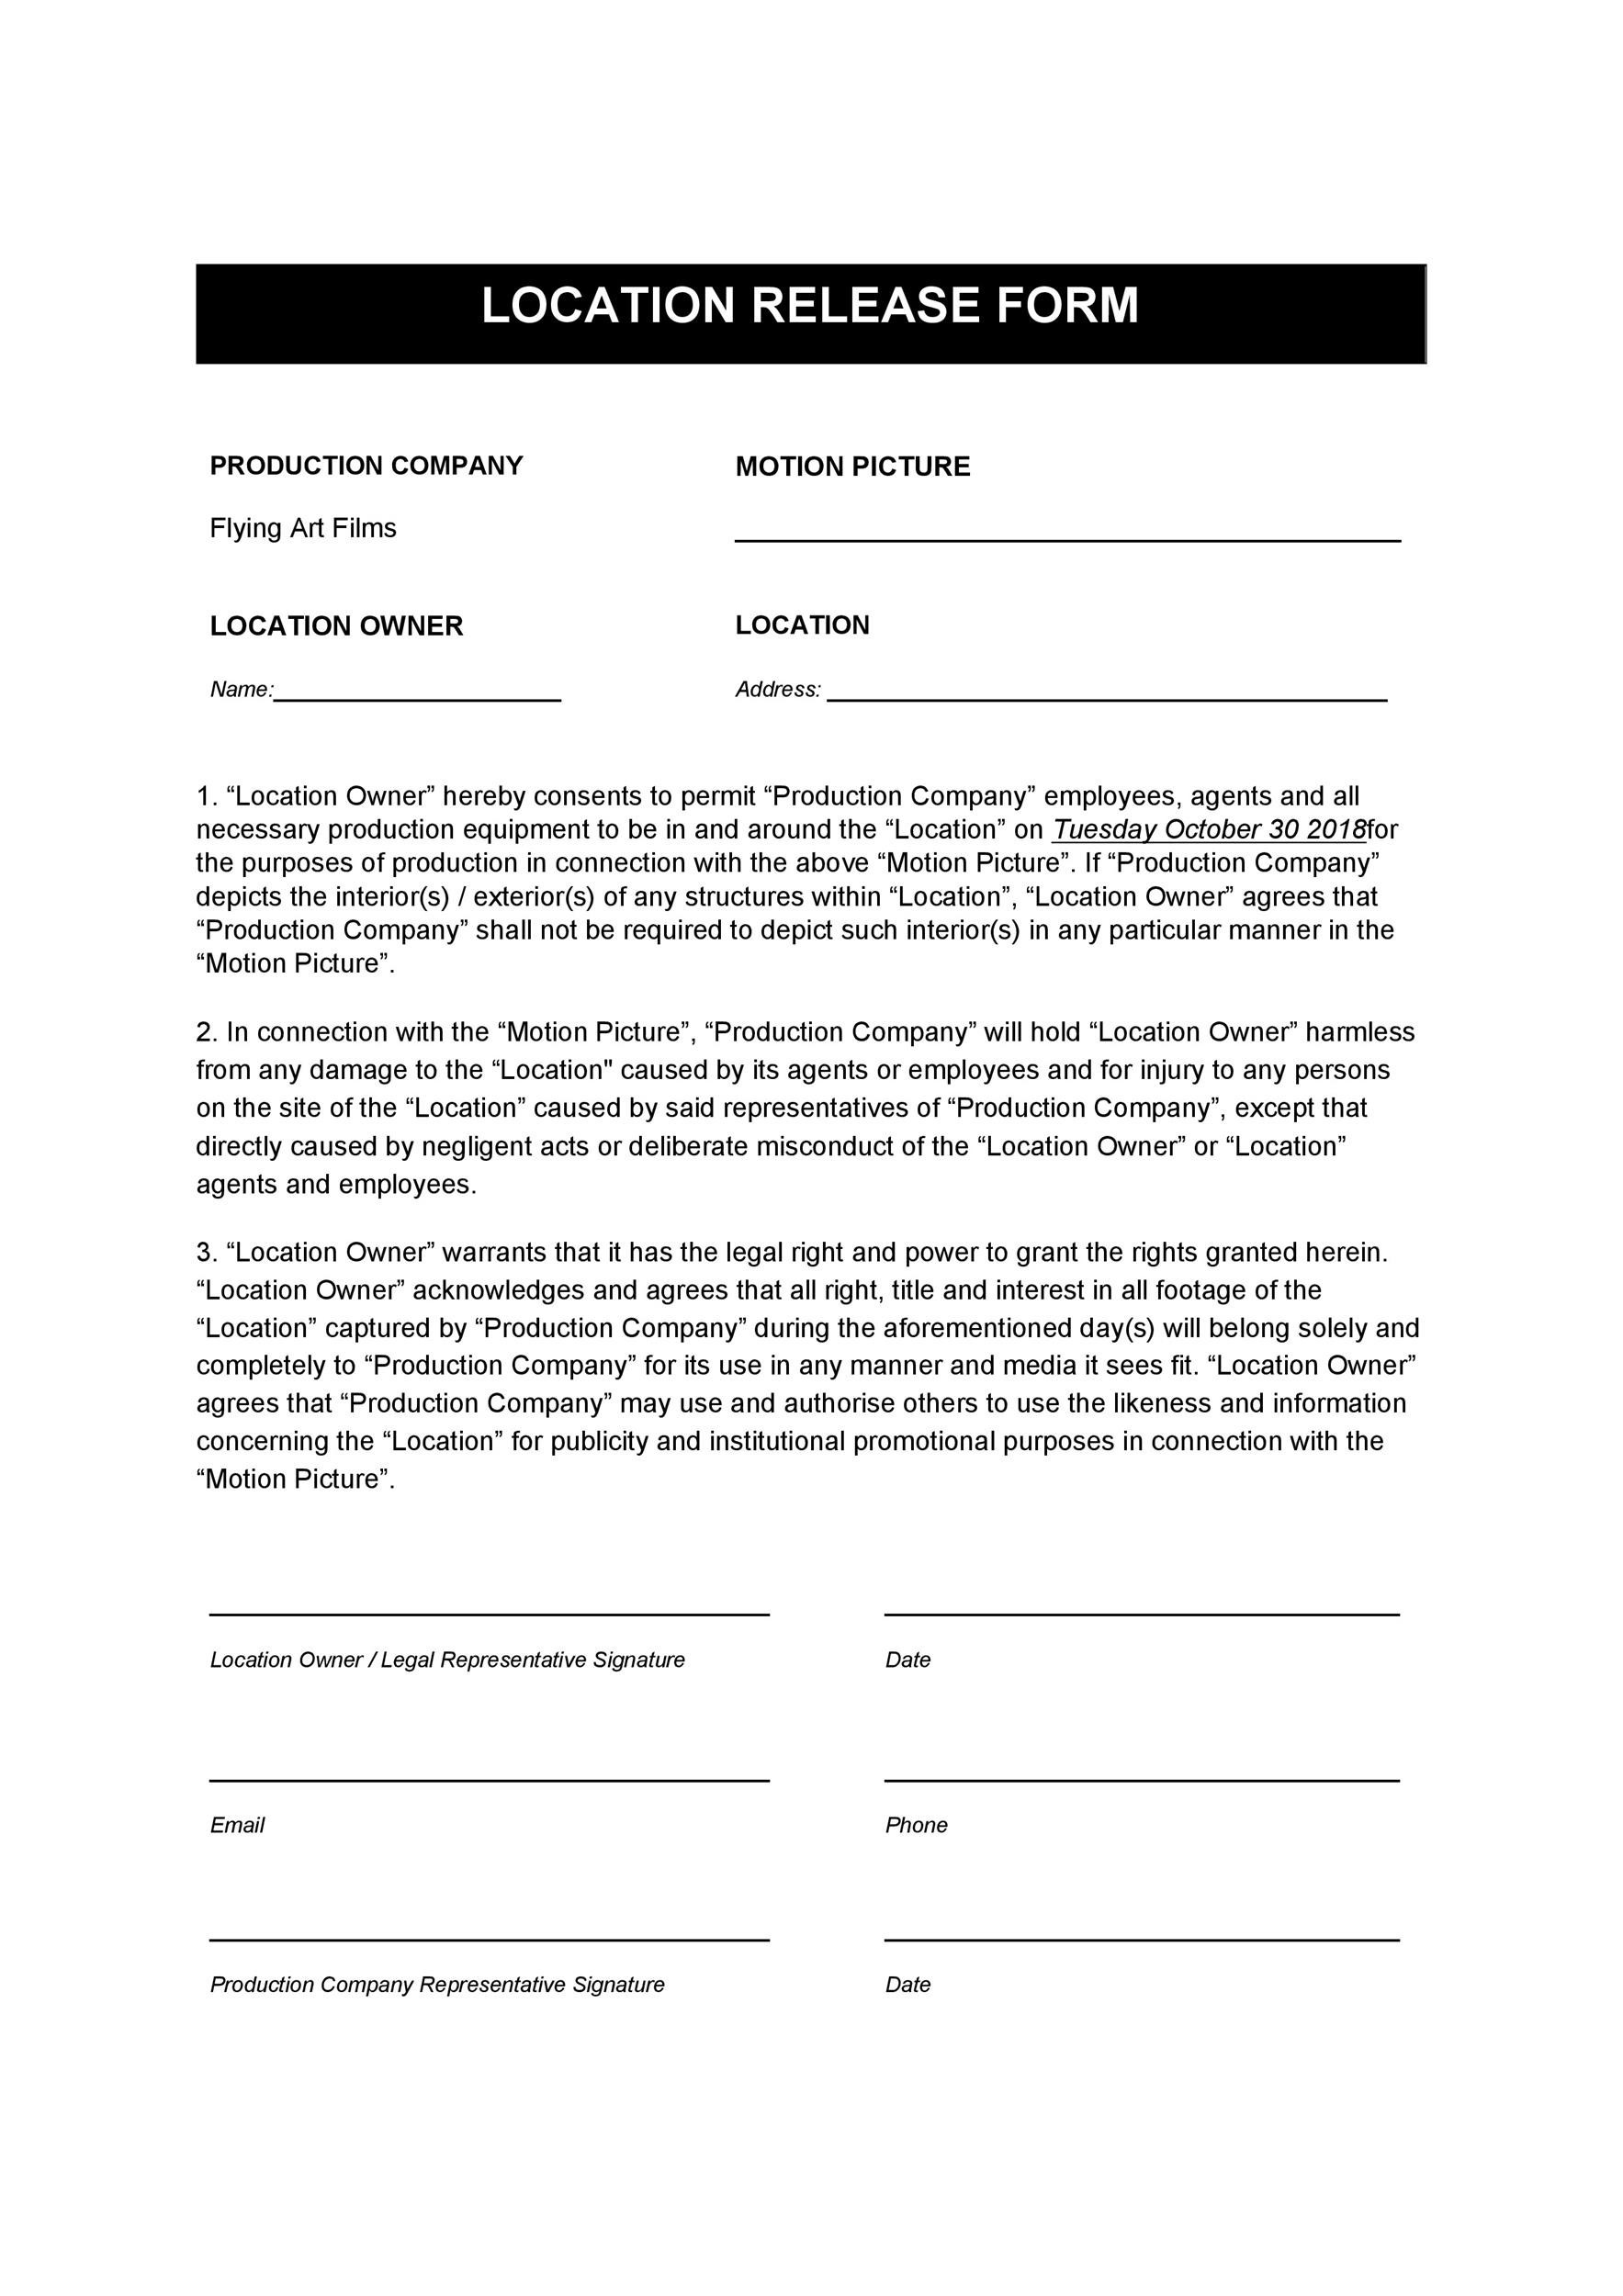 Free location release form 21